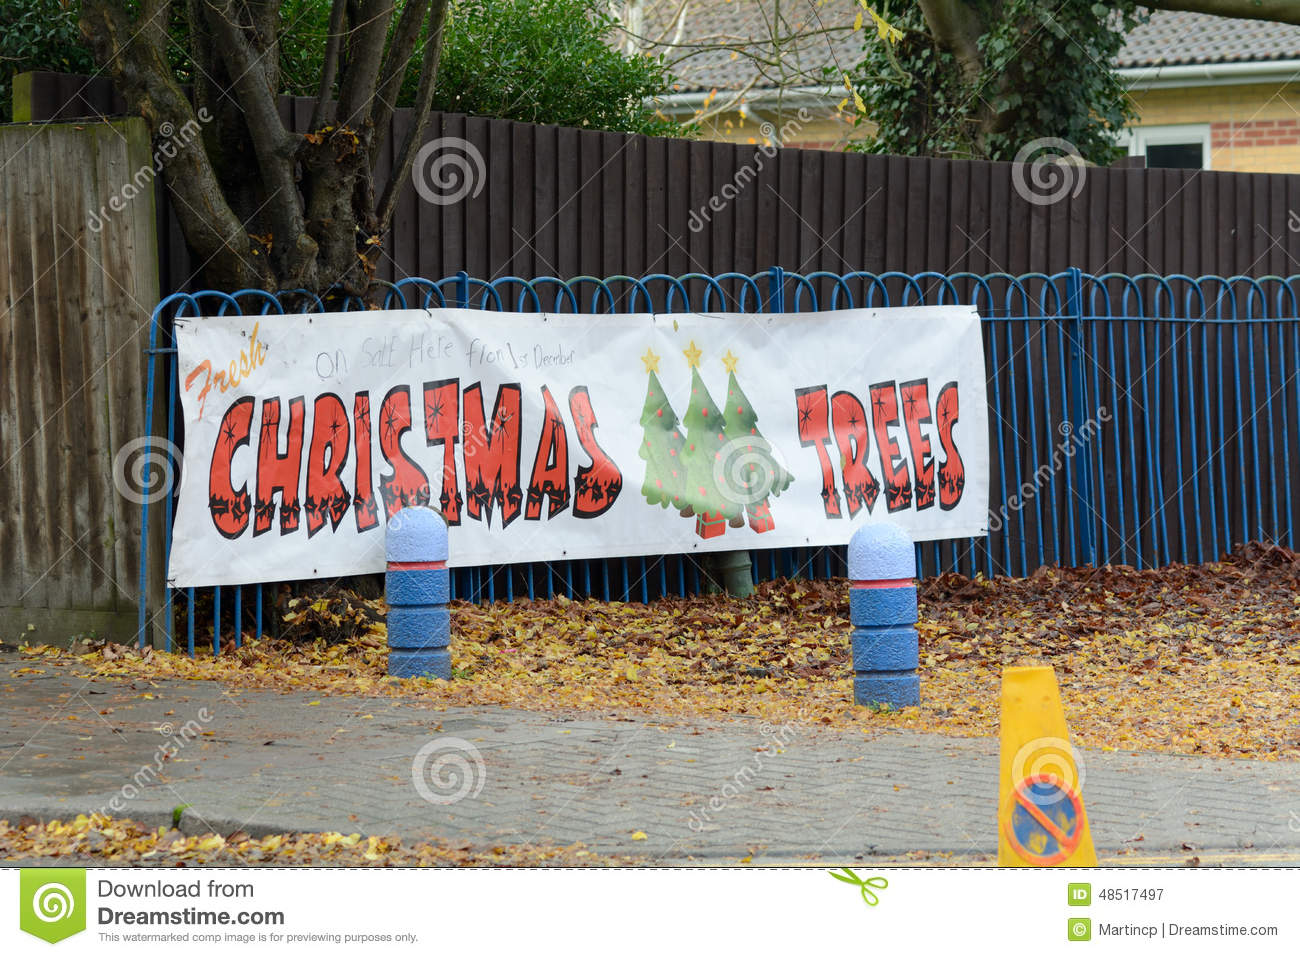 Christmas Trees For Sale Sign Stock Photo - Image: 48517497